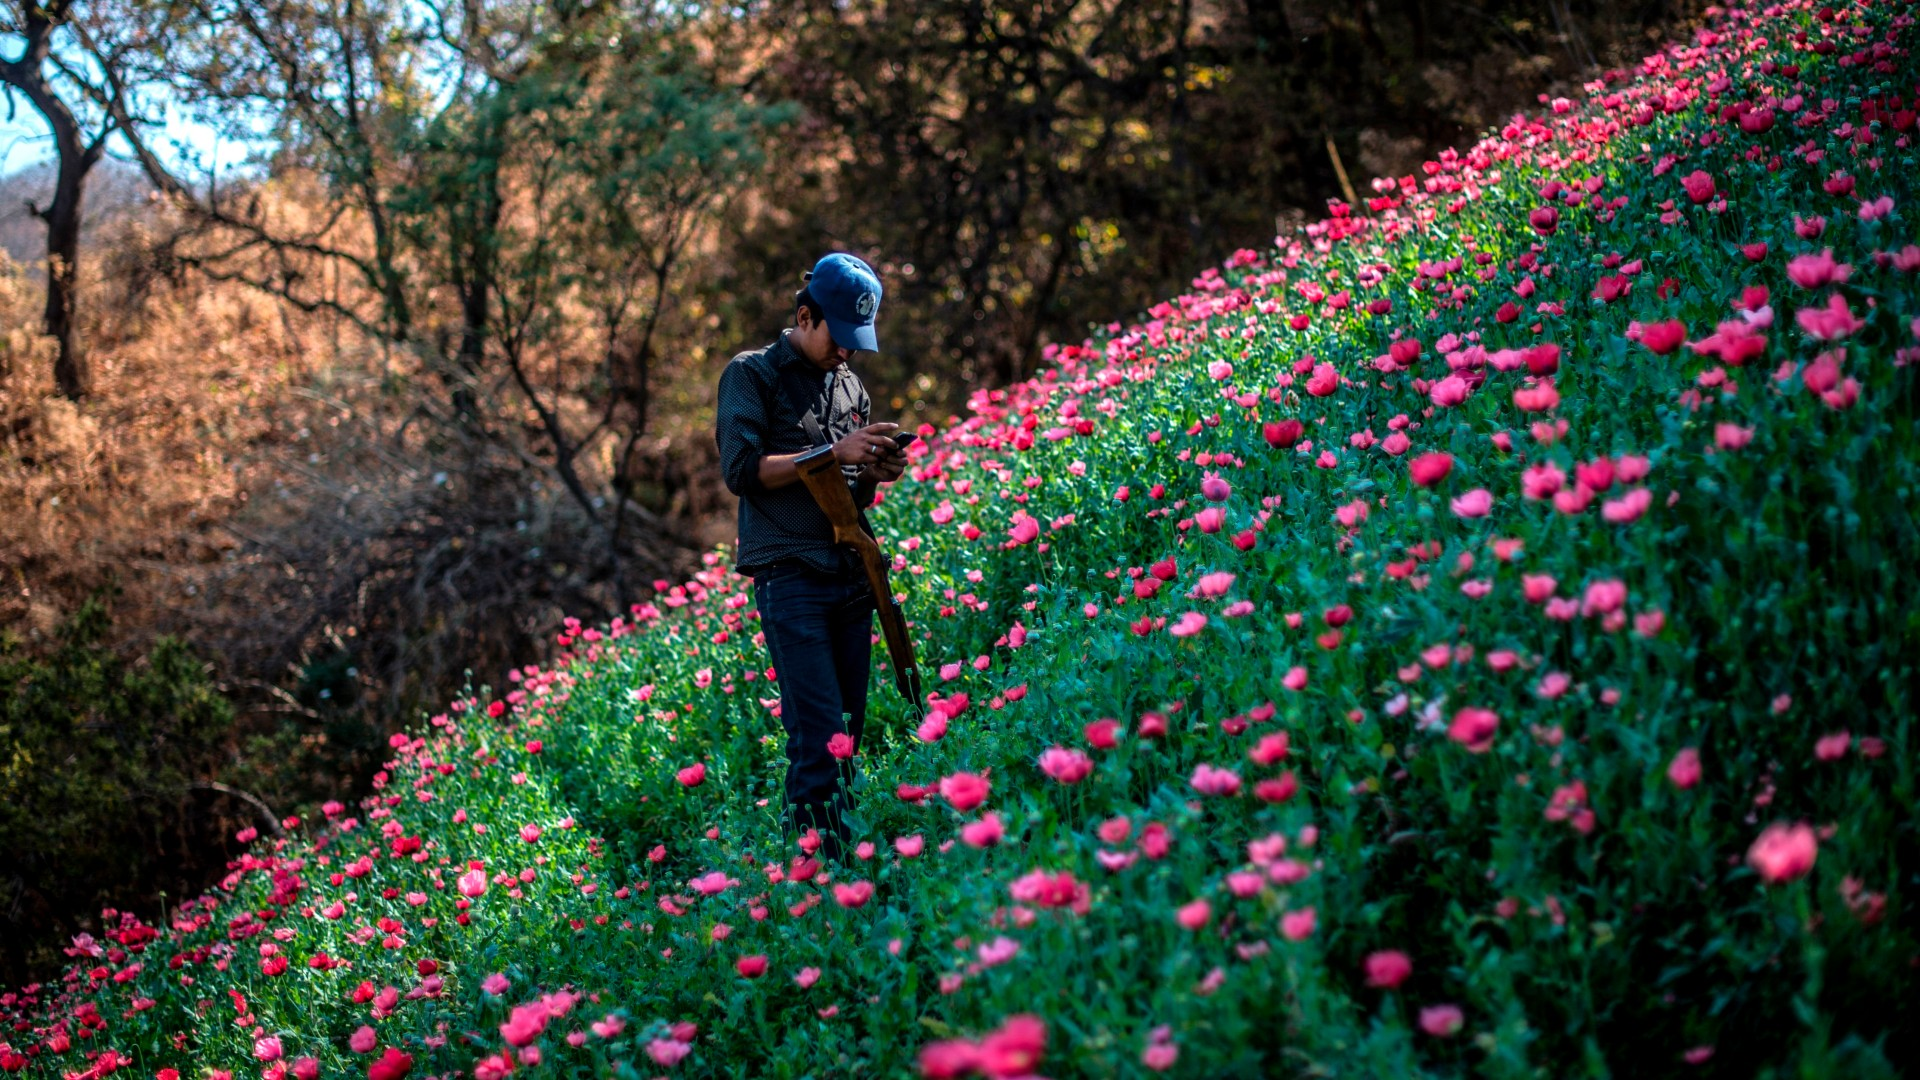 A Guerrero Community Police member looks at his mobile phone as he stands guard at an illegal poppy field, in Heliodoro Castillo, Guerrero state, Mexico, on March 25, 2018. (PEDRO PARDO/AFP via Getty Images)